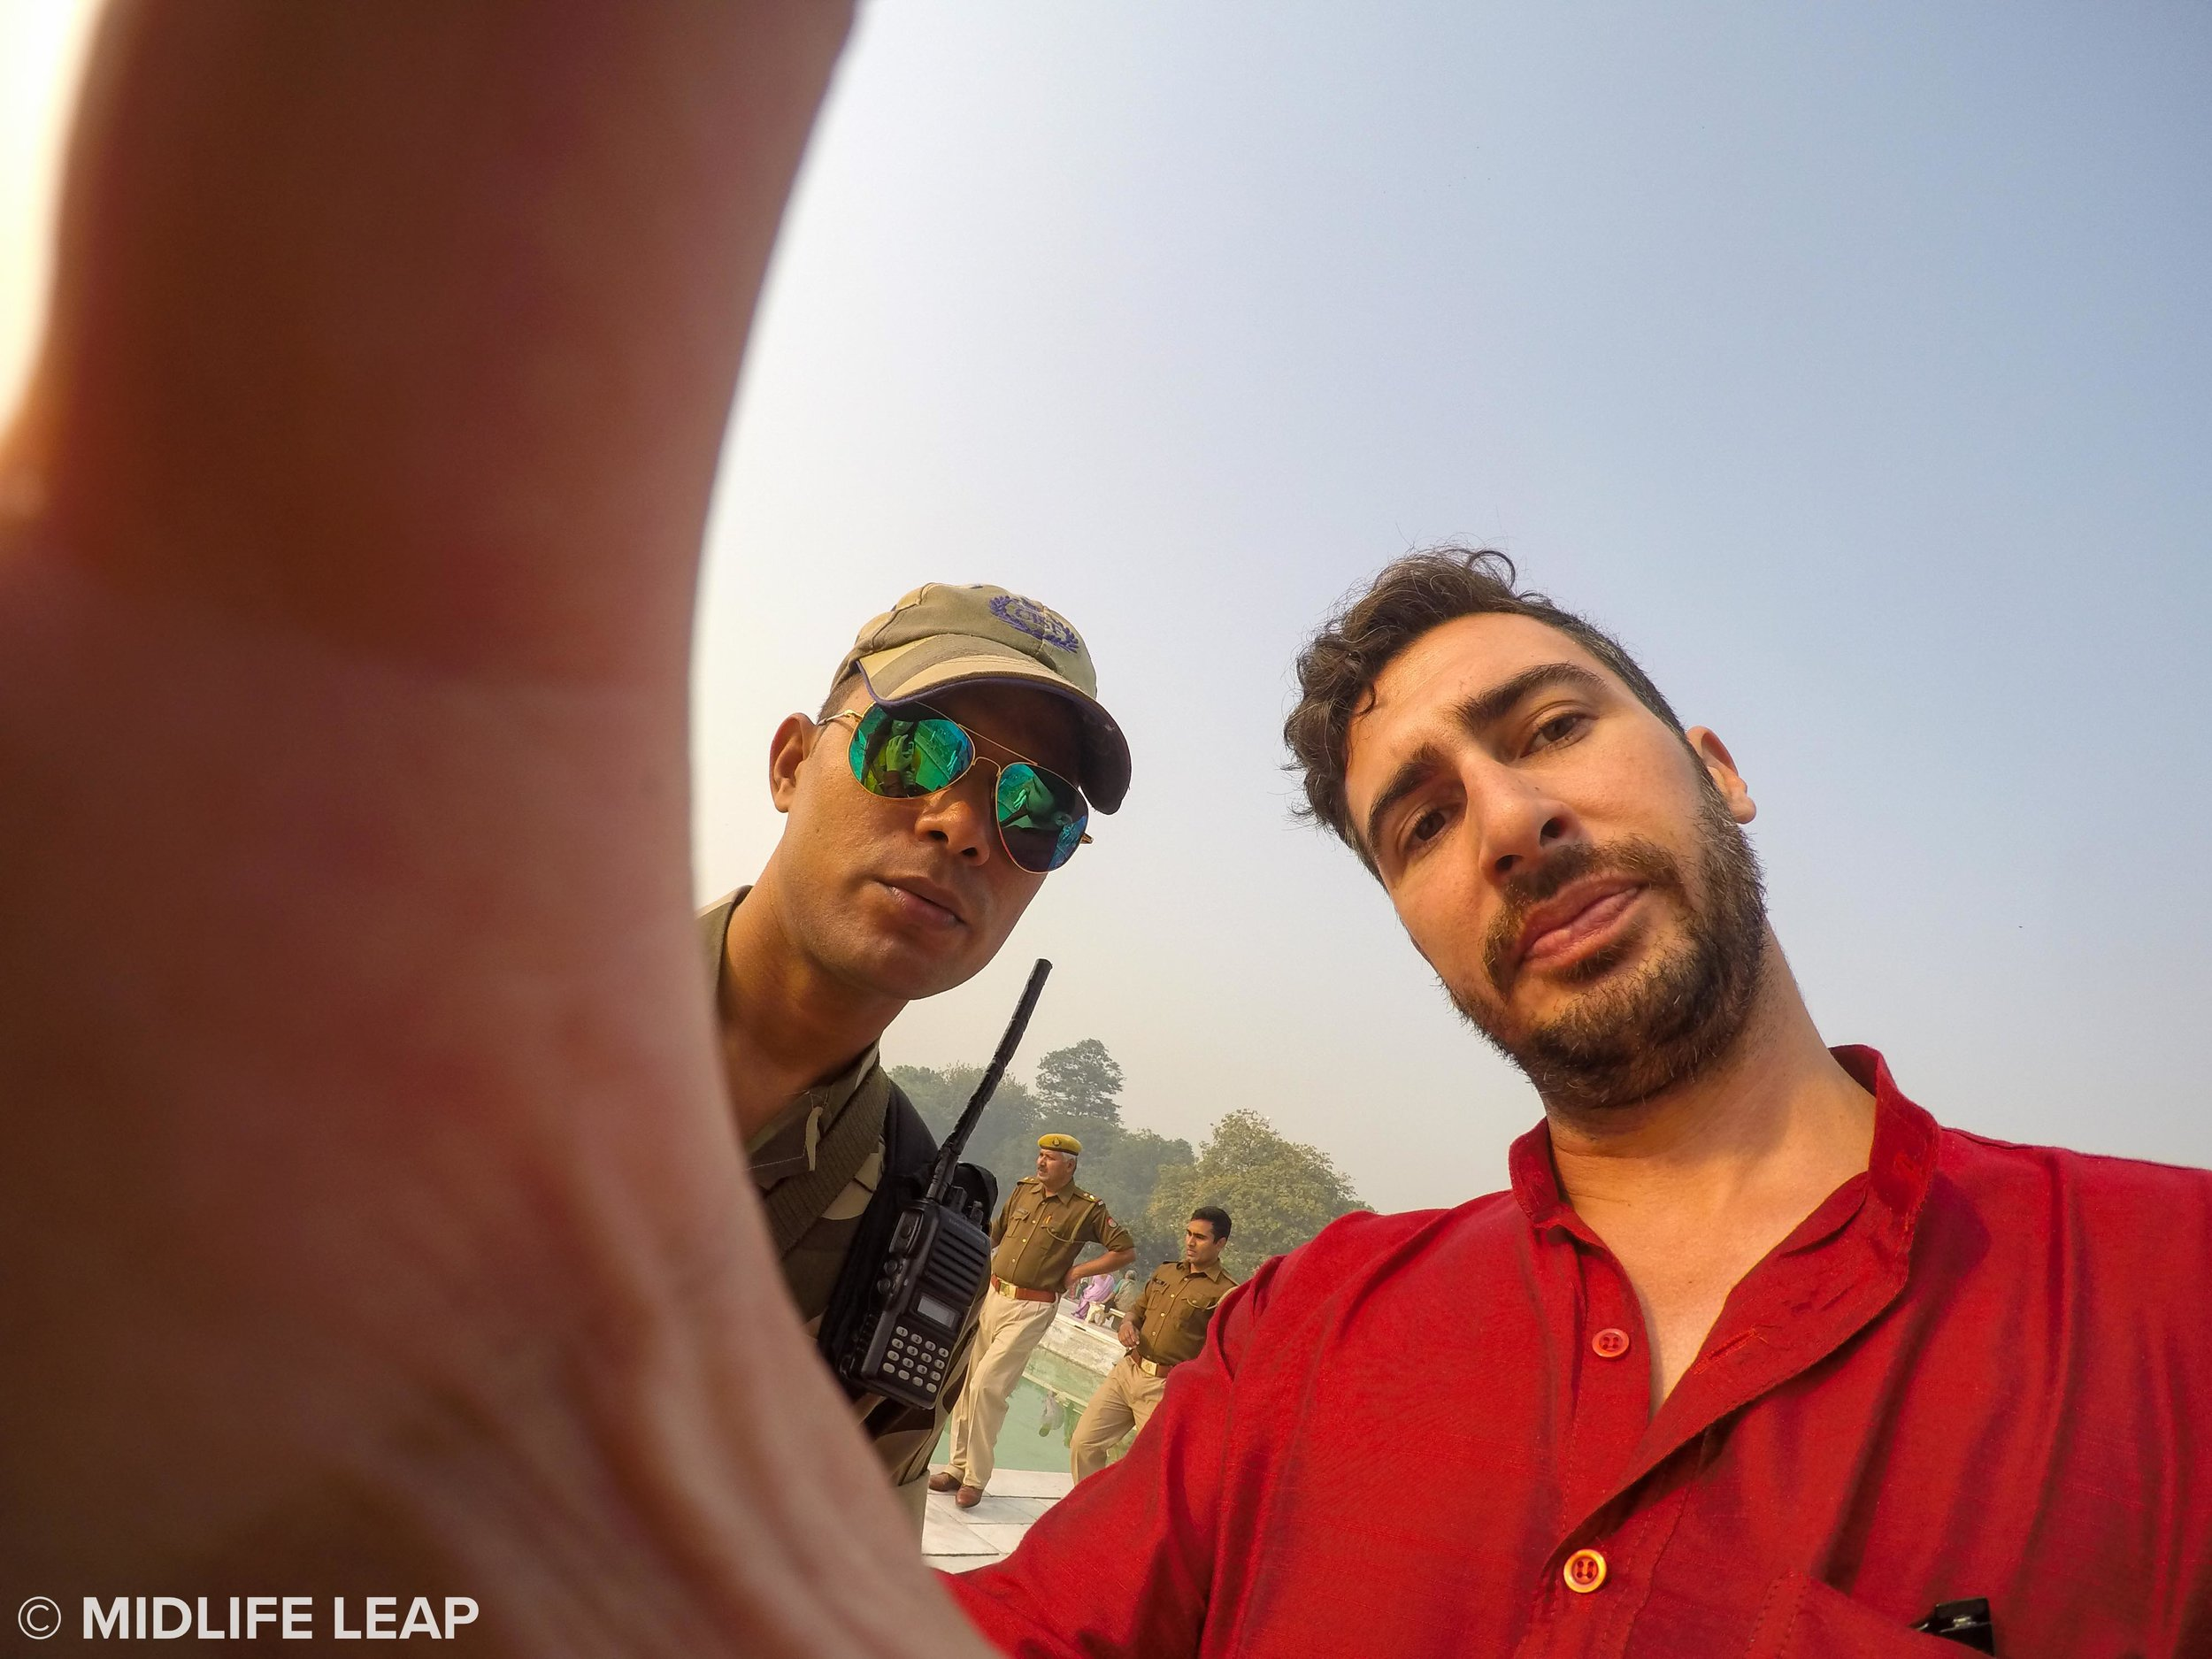 Trying to convince the cop that our GoPro was only taking pictures, not video